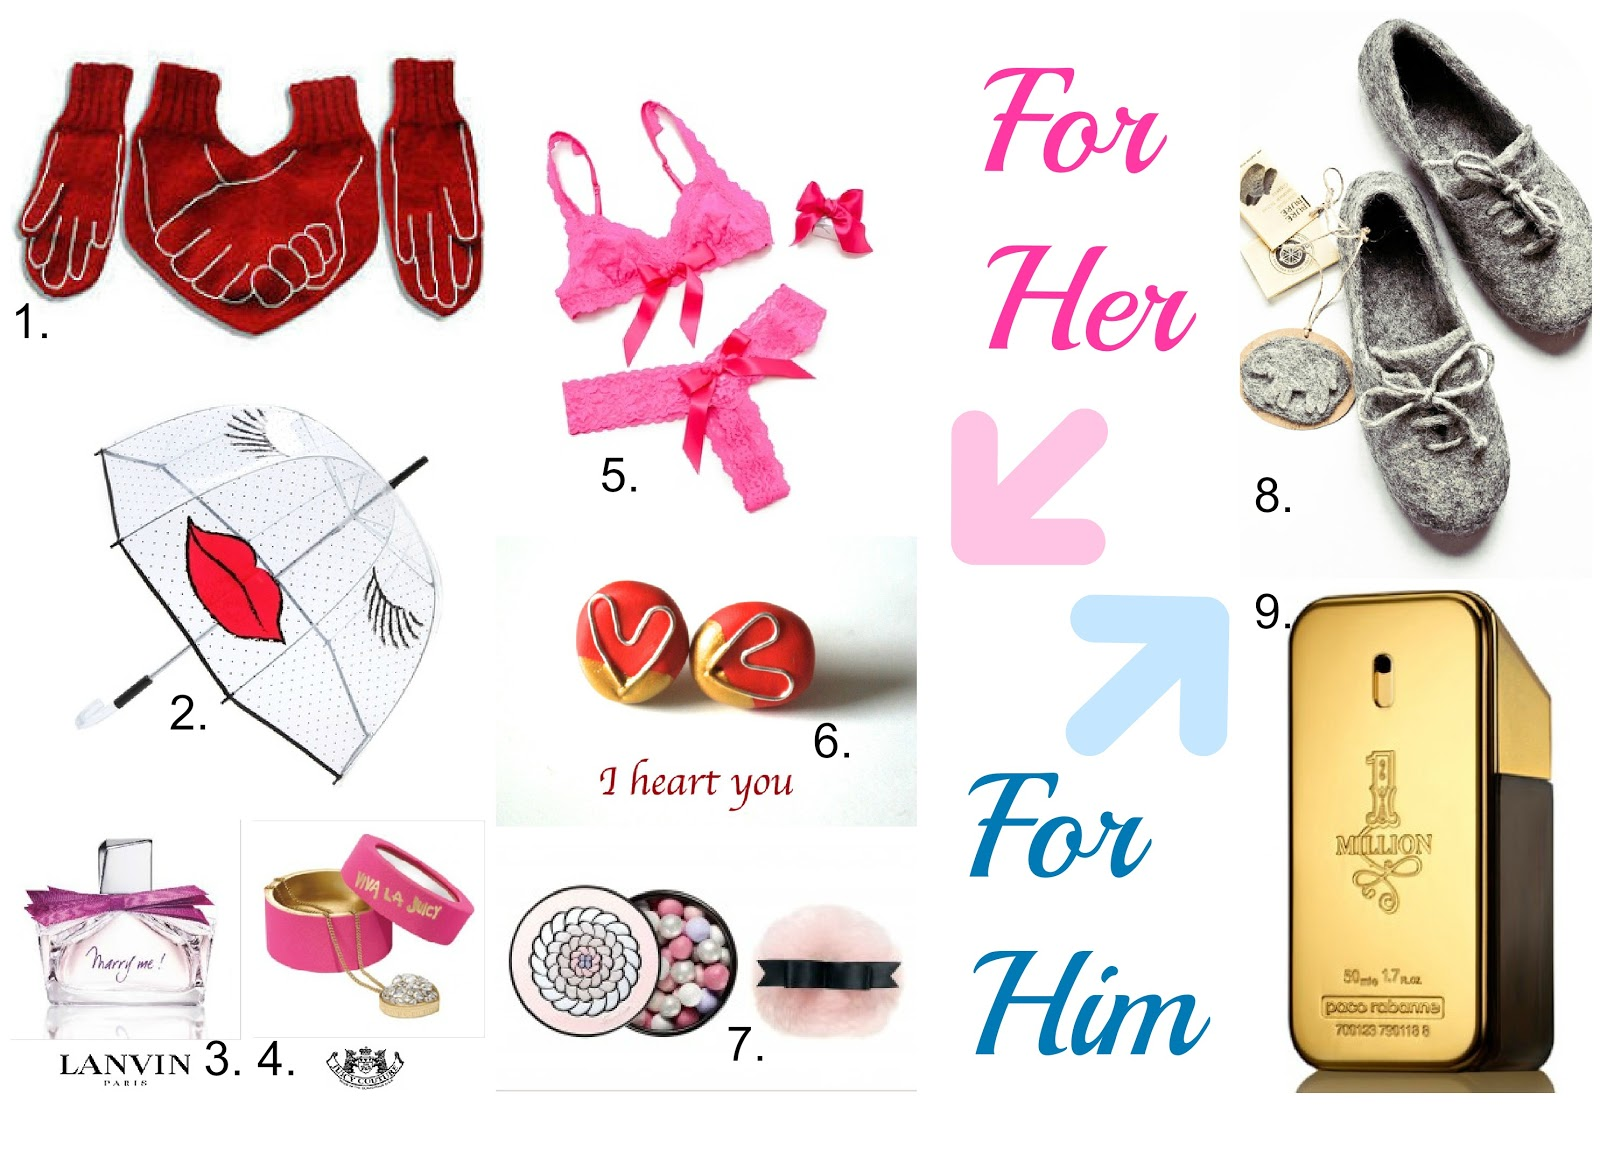 Gift Ideas for Valentine's Day- For Him and For Her